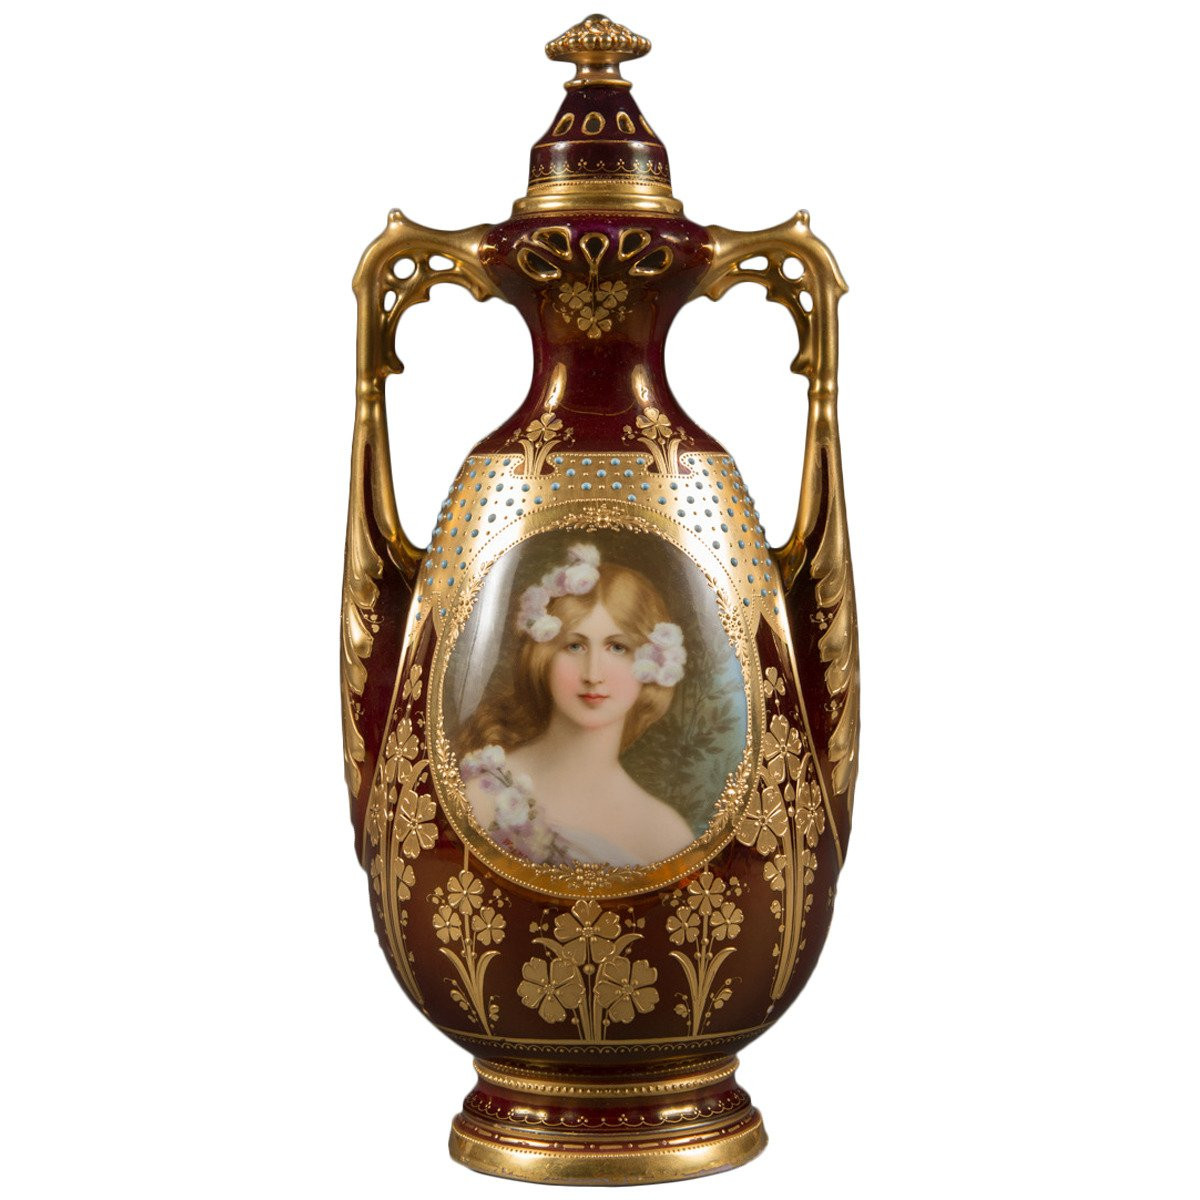 austrian vases markings of austrian porcelain antique vase and cover by royal vienna at 1stdibs for austrian royal vienna porcelain jeweled iridescent portrait vase circa 1900